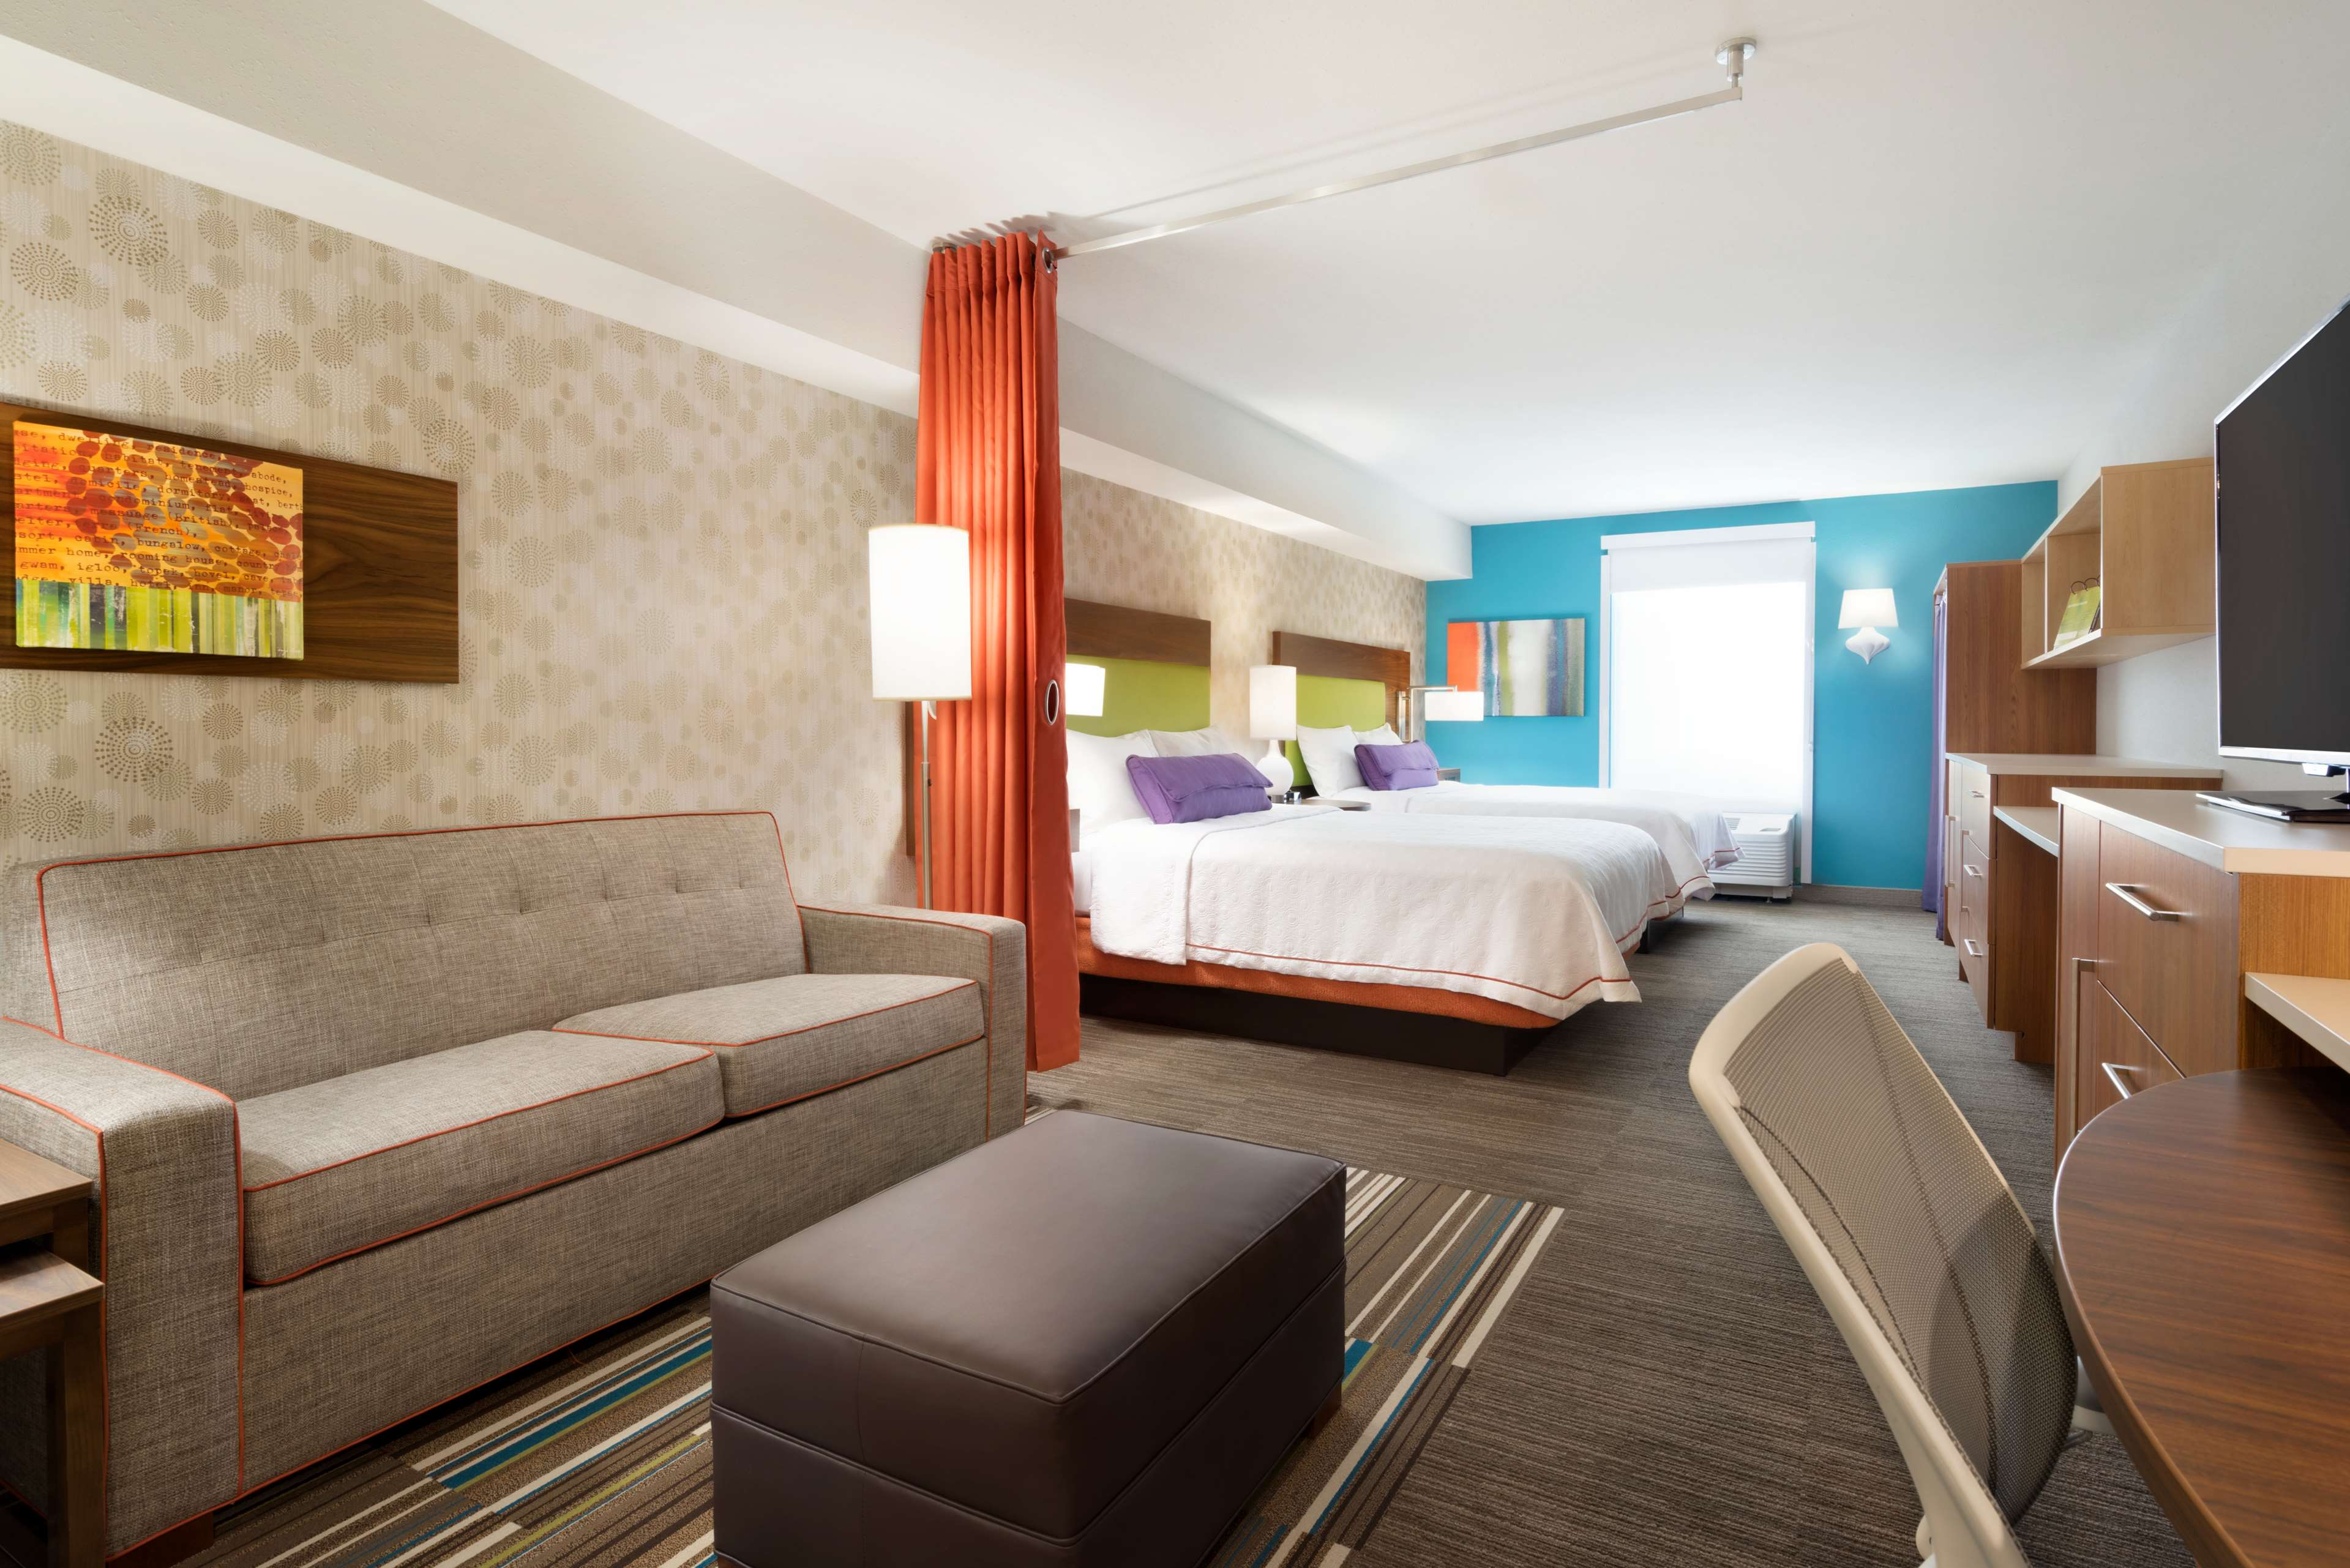 Home2 Suites by Hilton Roanoke image 32